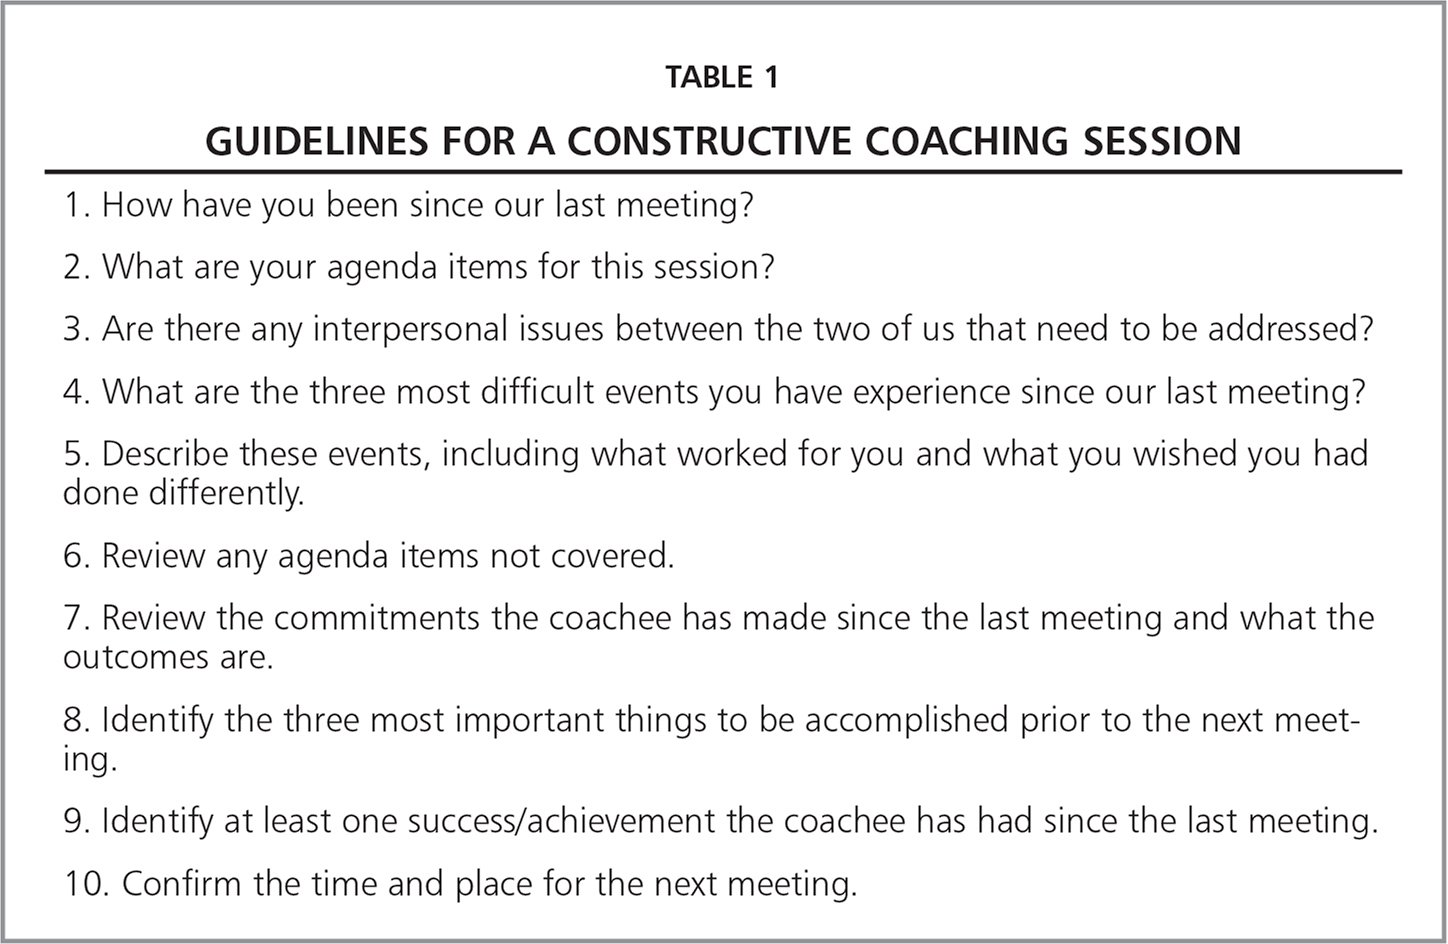 Guidelines for a Constructive Coaching Session